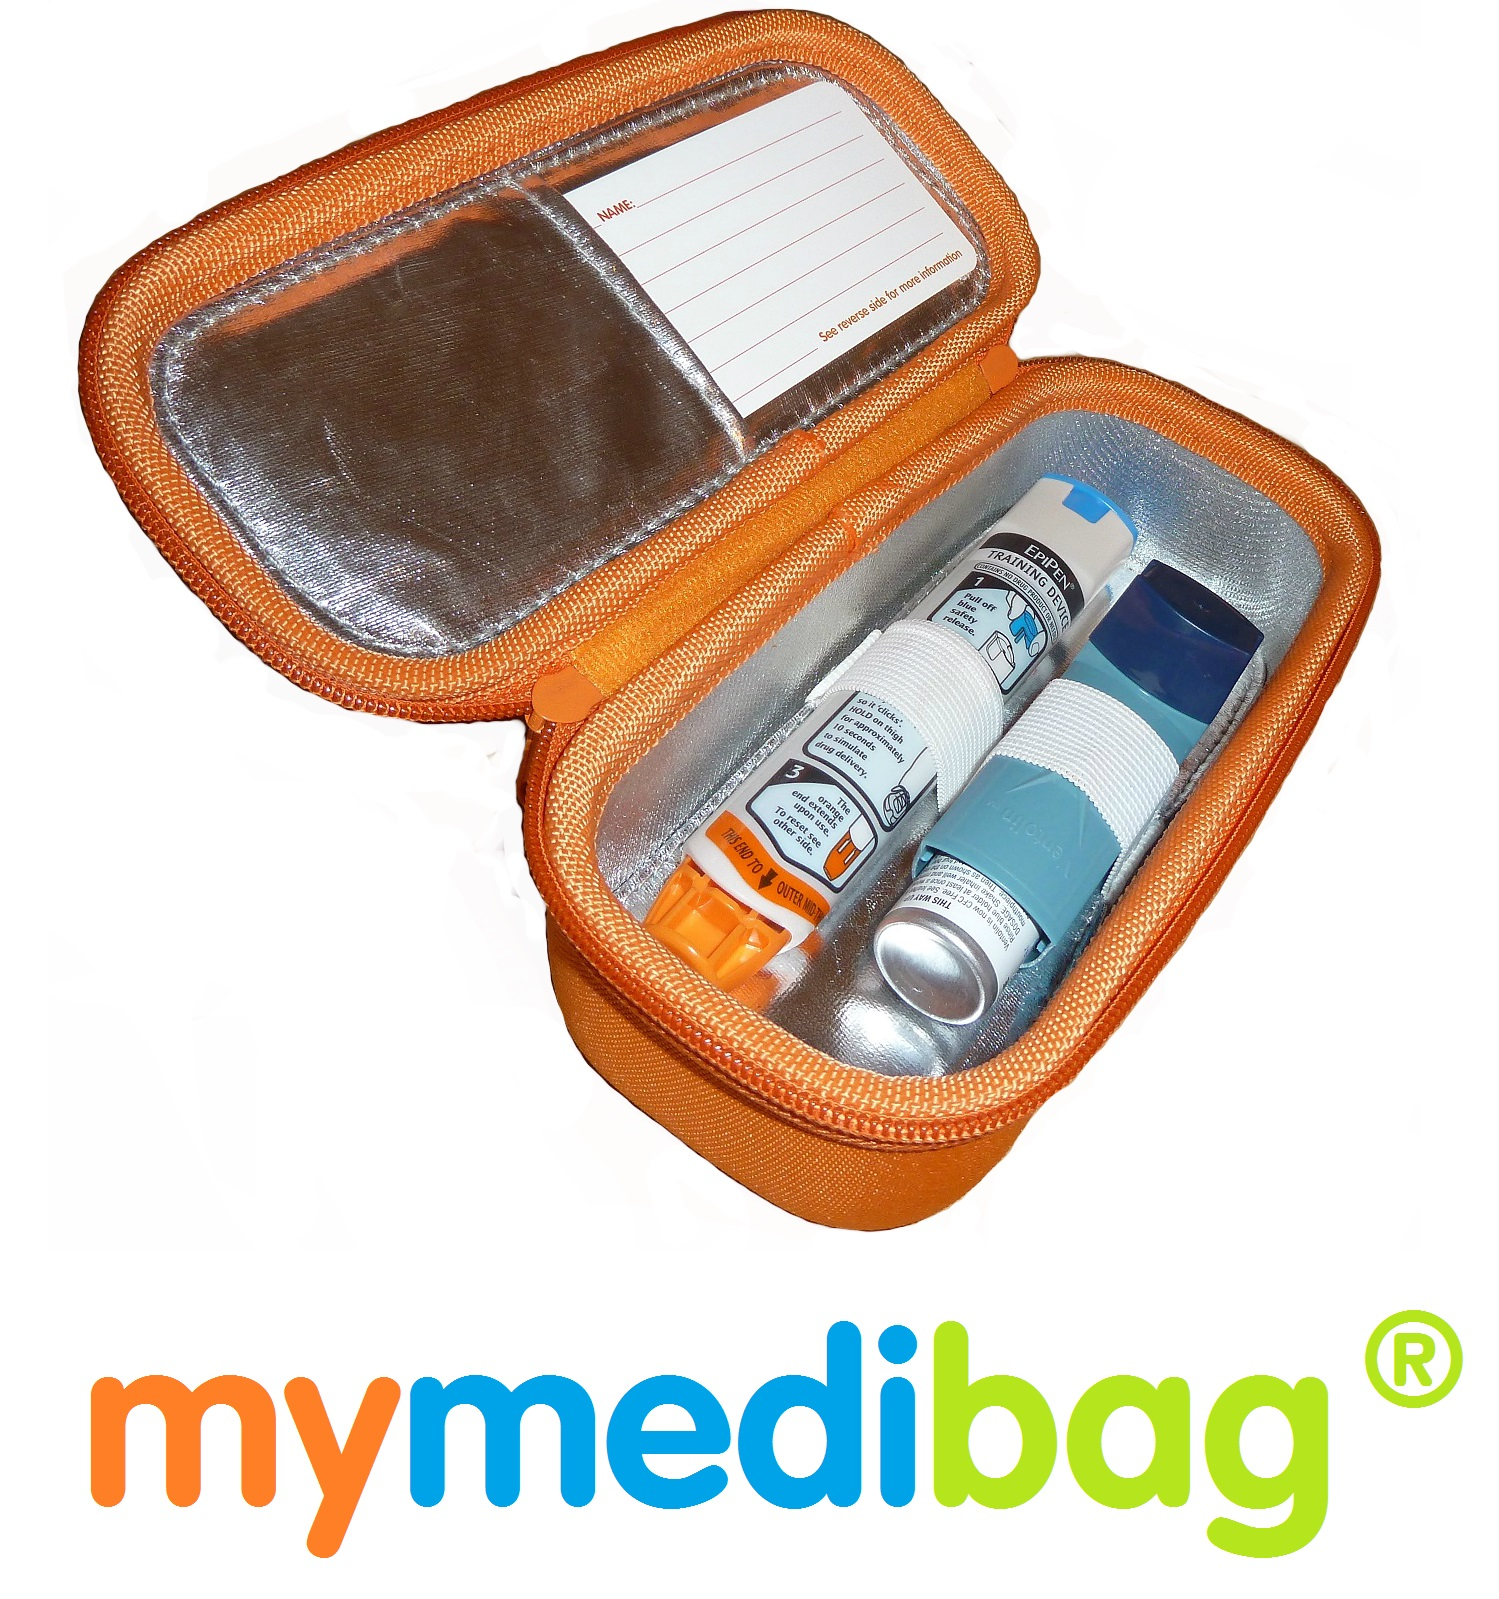 Mymedibag with Epipen and Ventolin